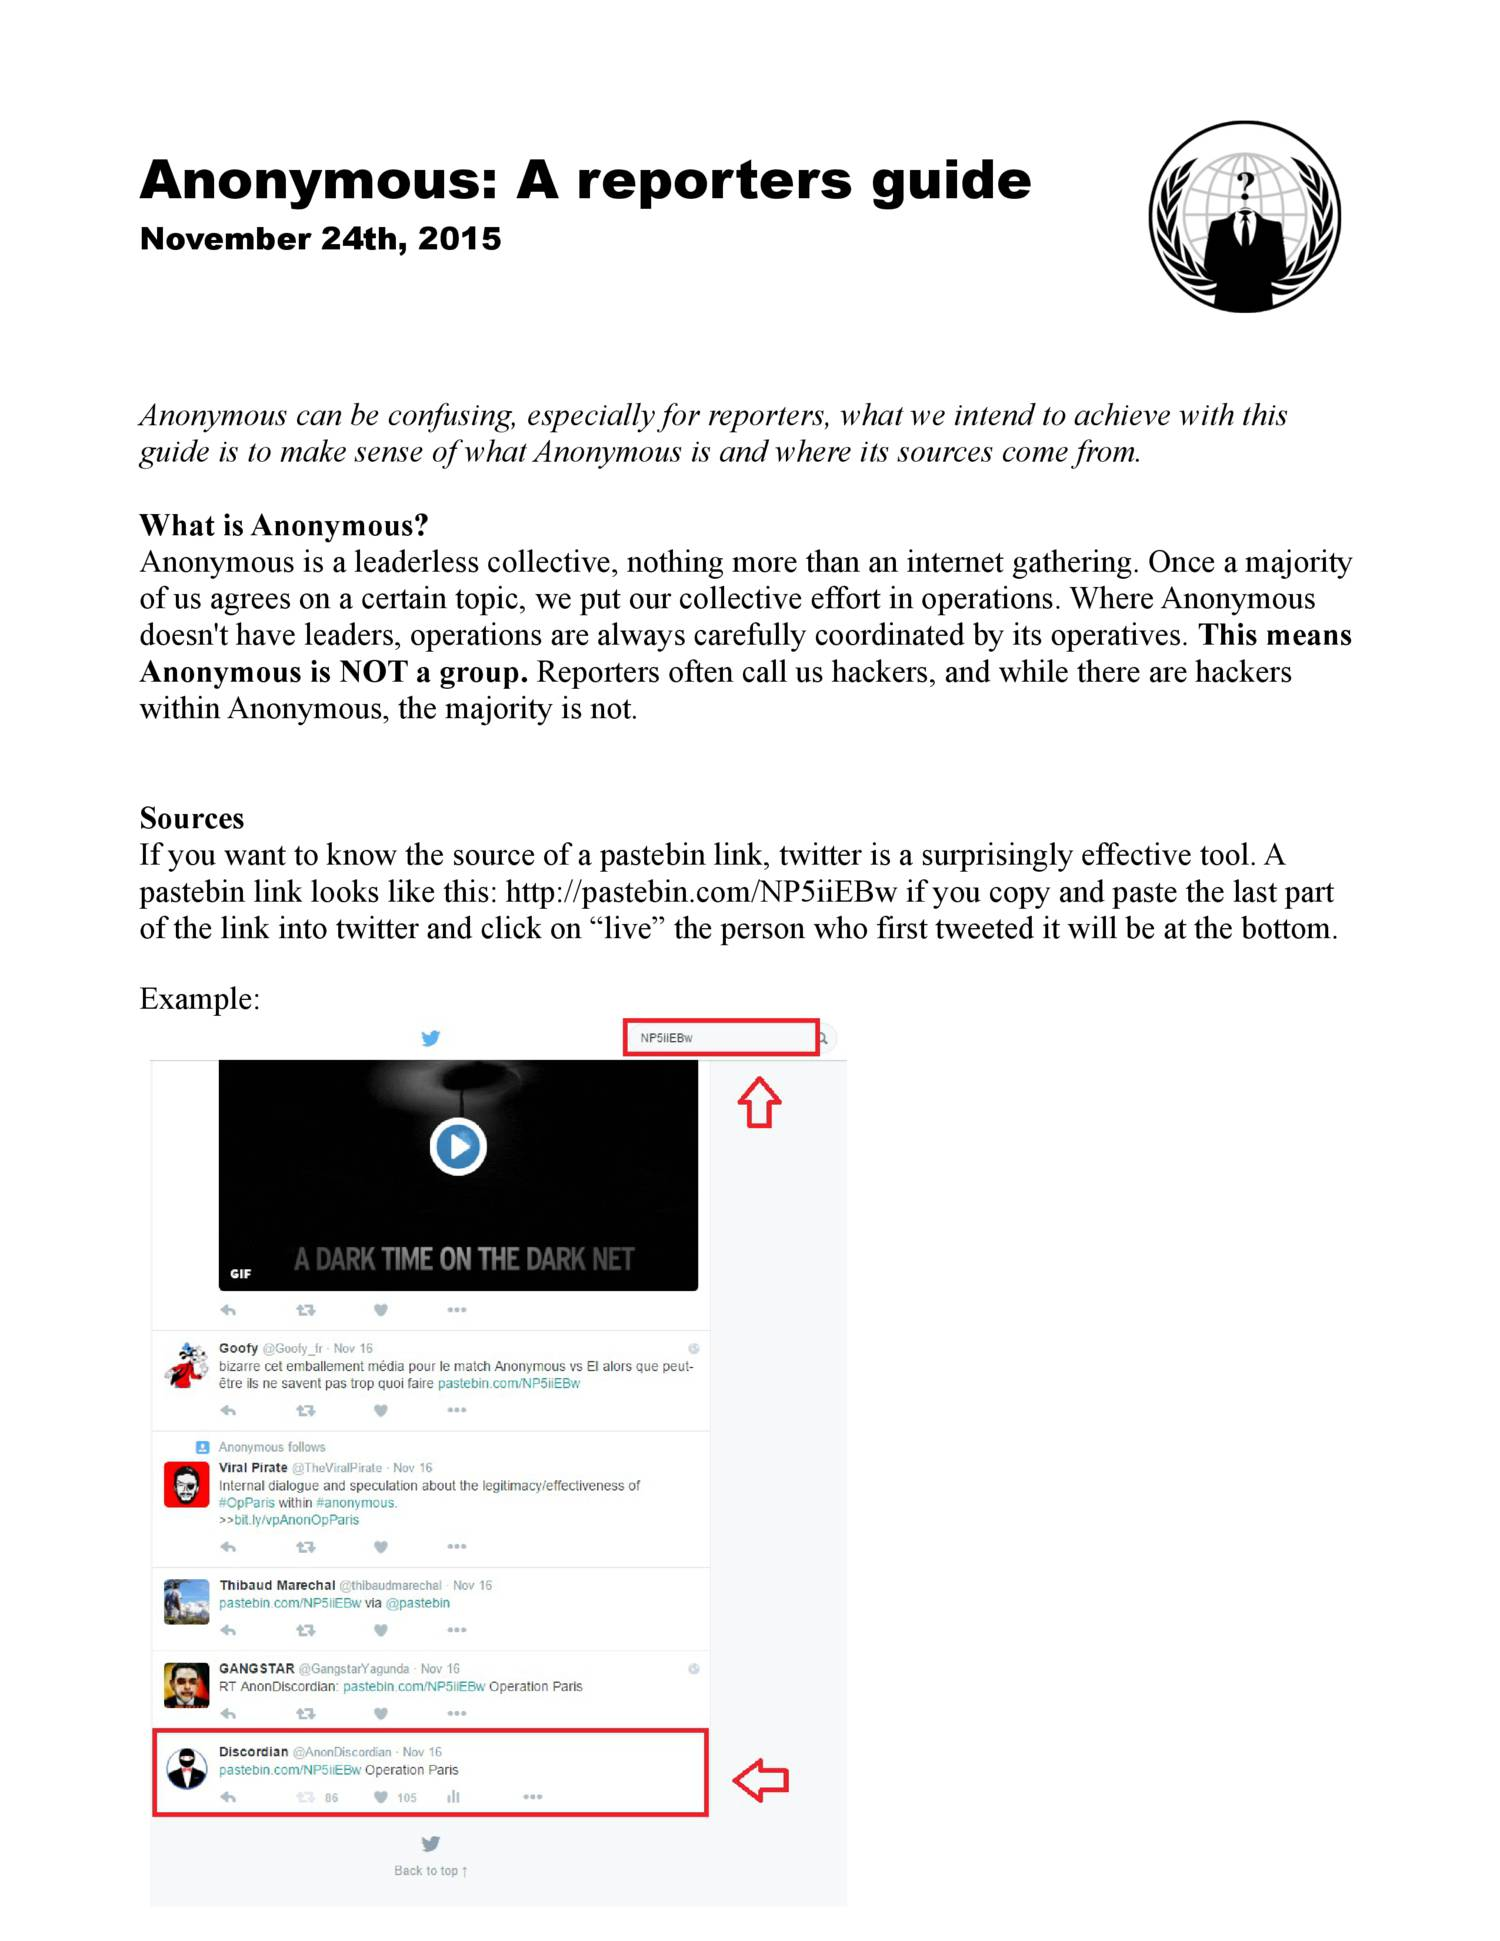 Anonymous - A reporters guide pdf | DocDroid